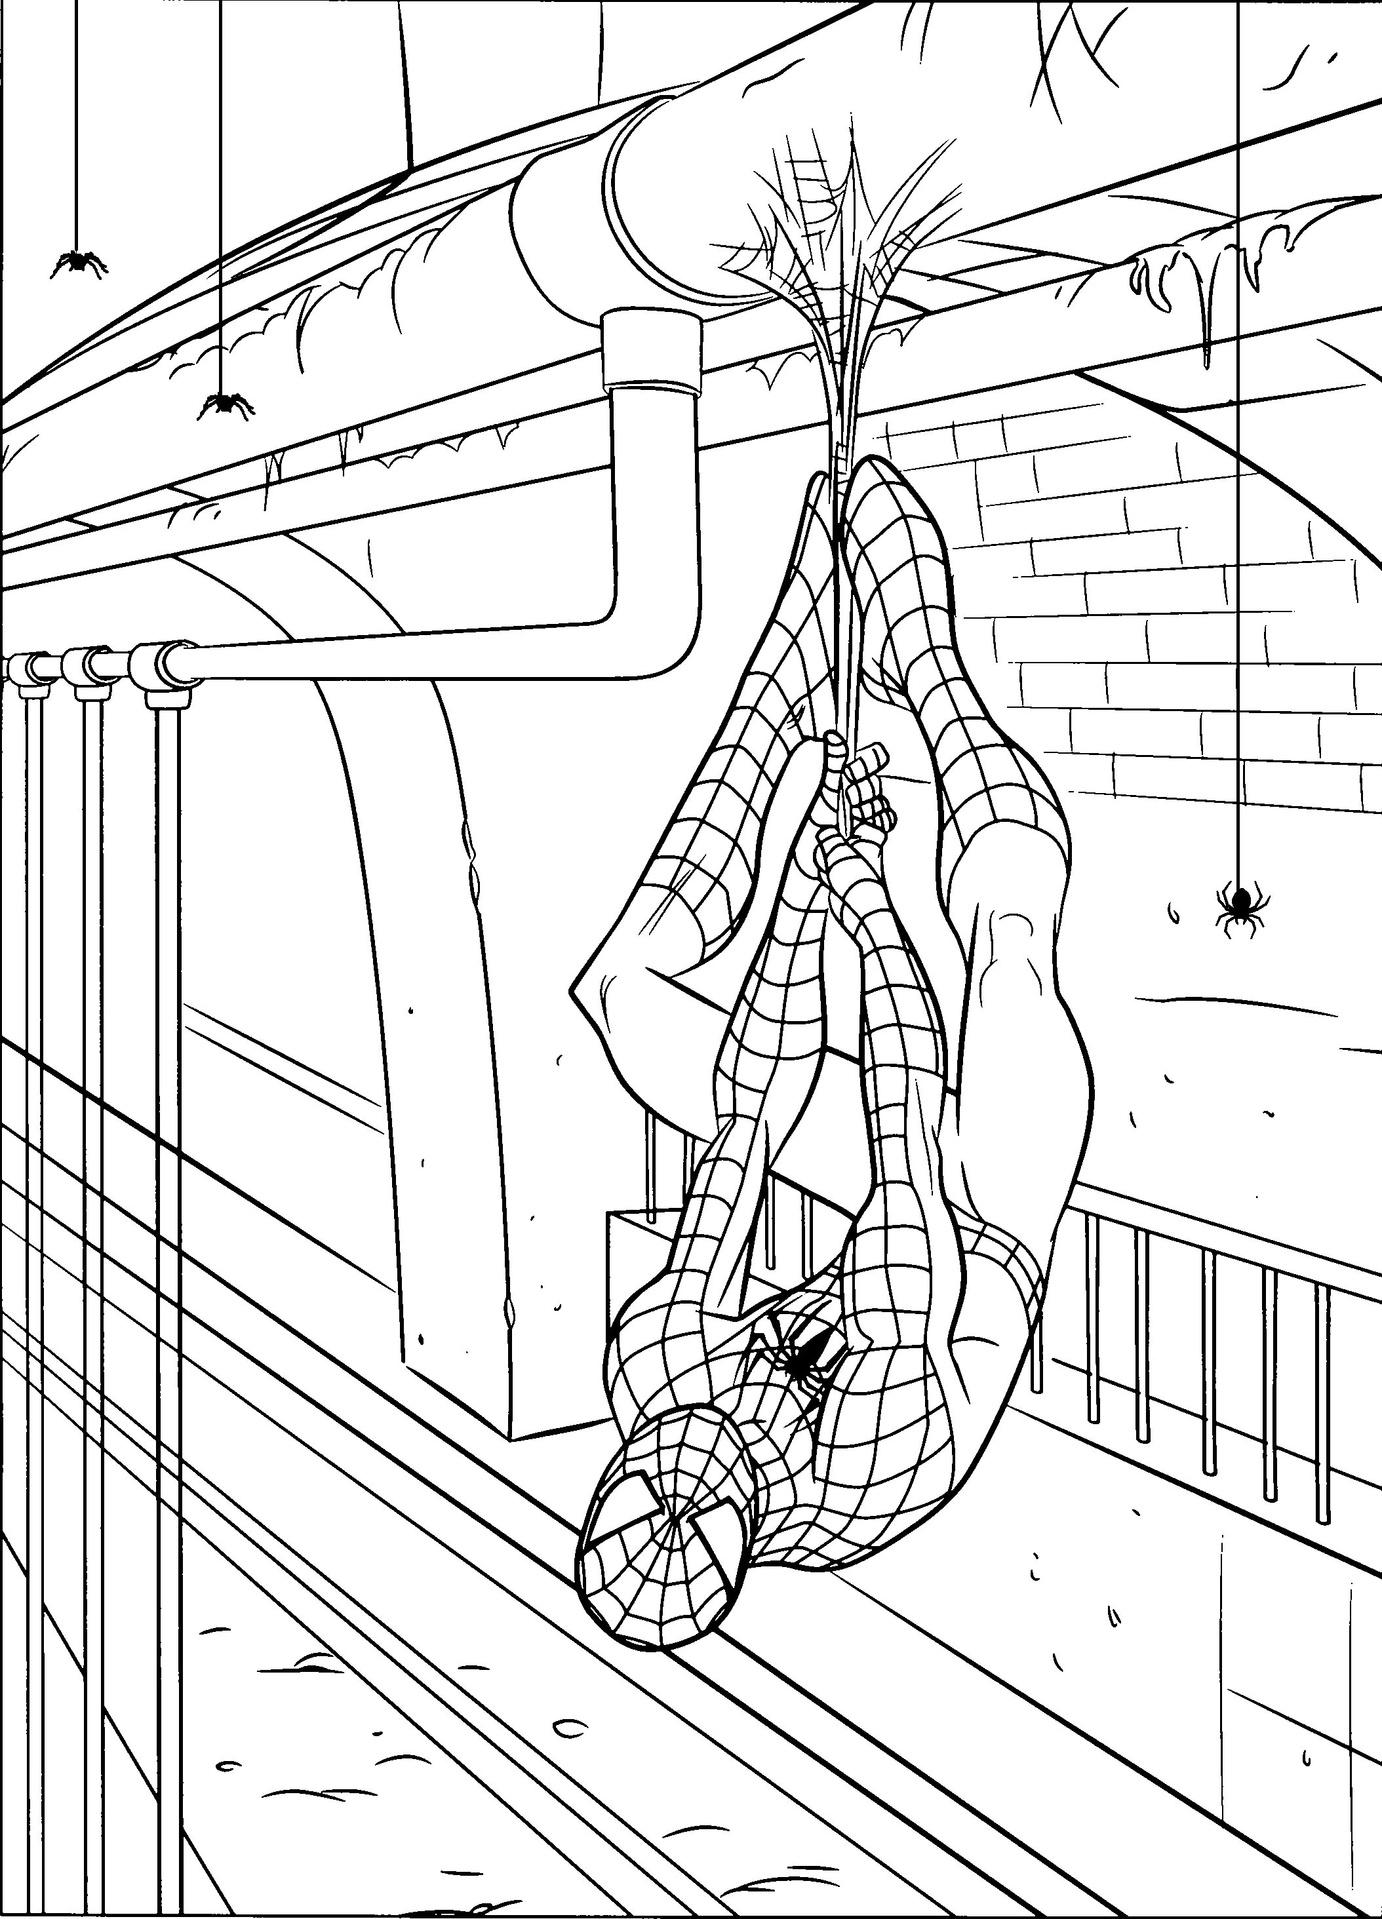 free spiderman coloring pages - Spiderman Coloring Page